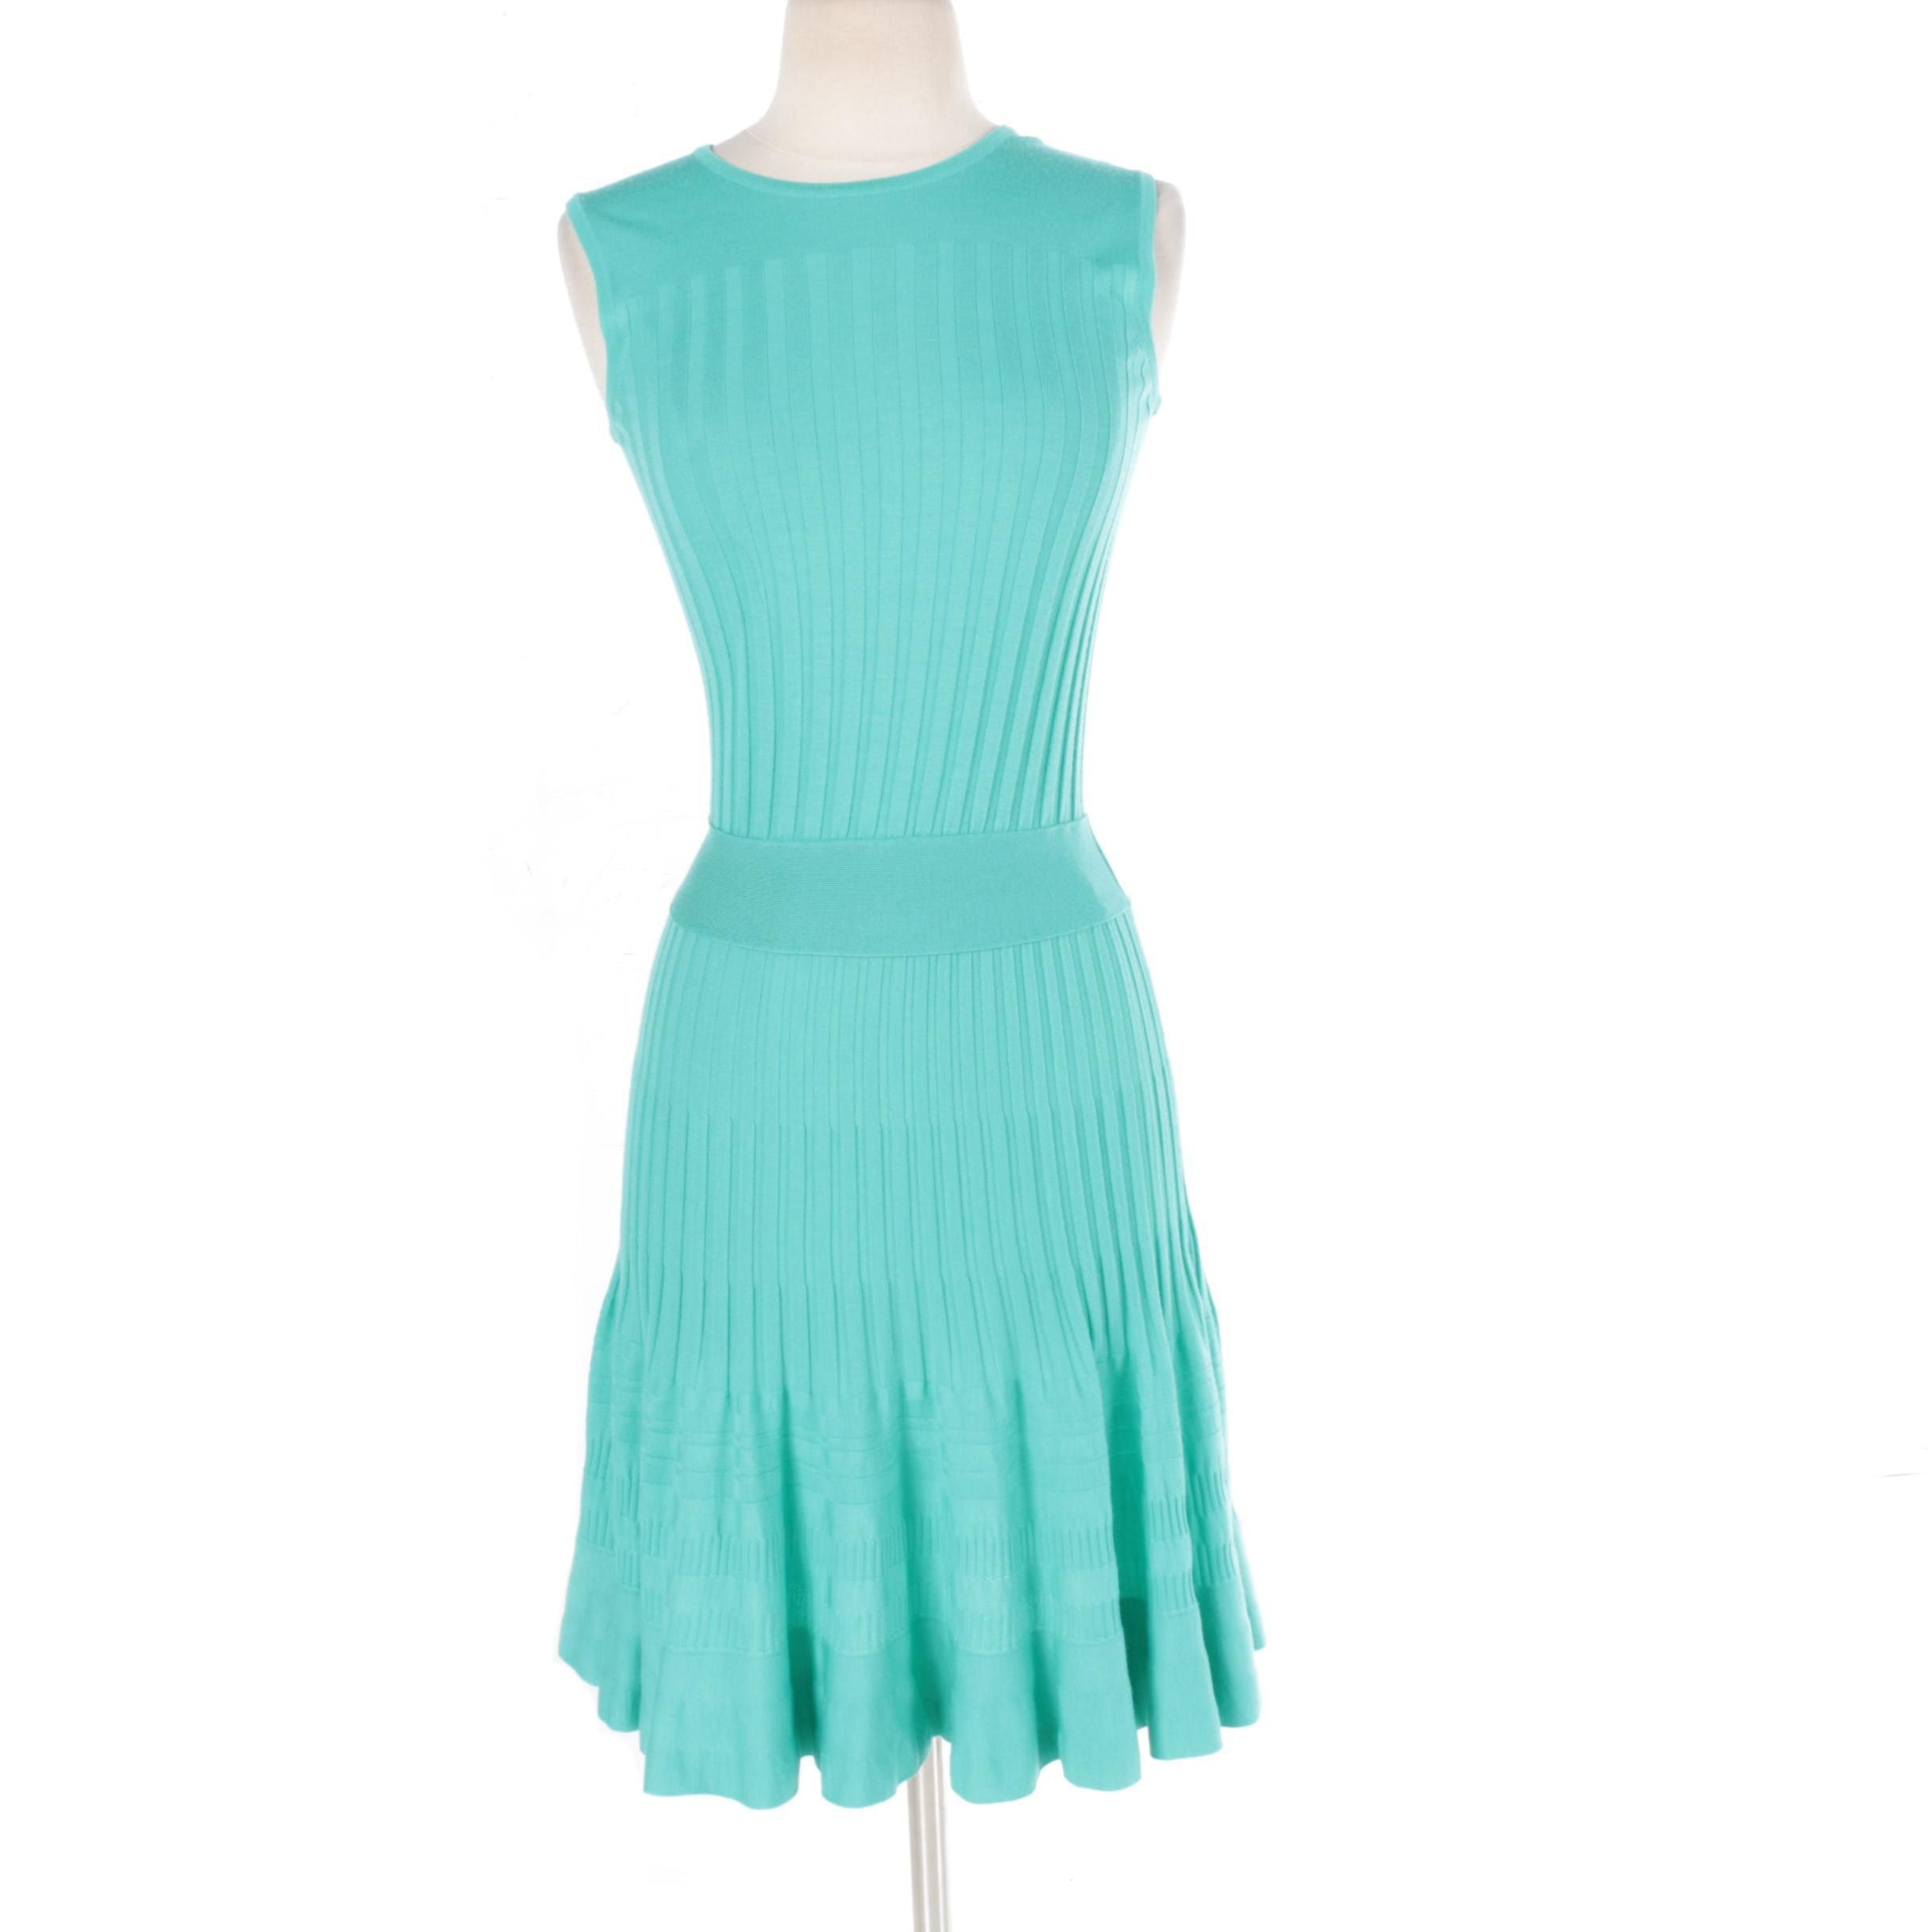 Emilio Pucci Knit Dress